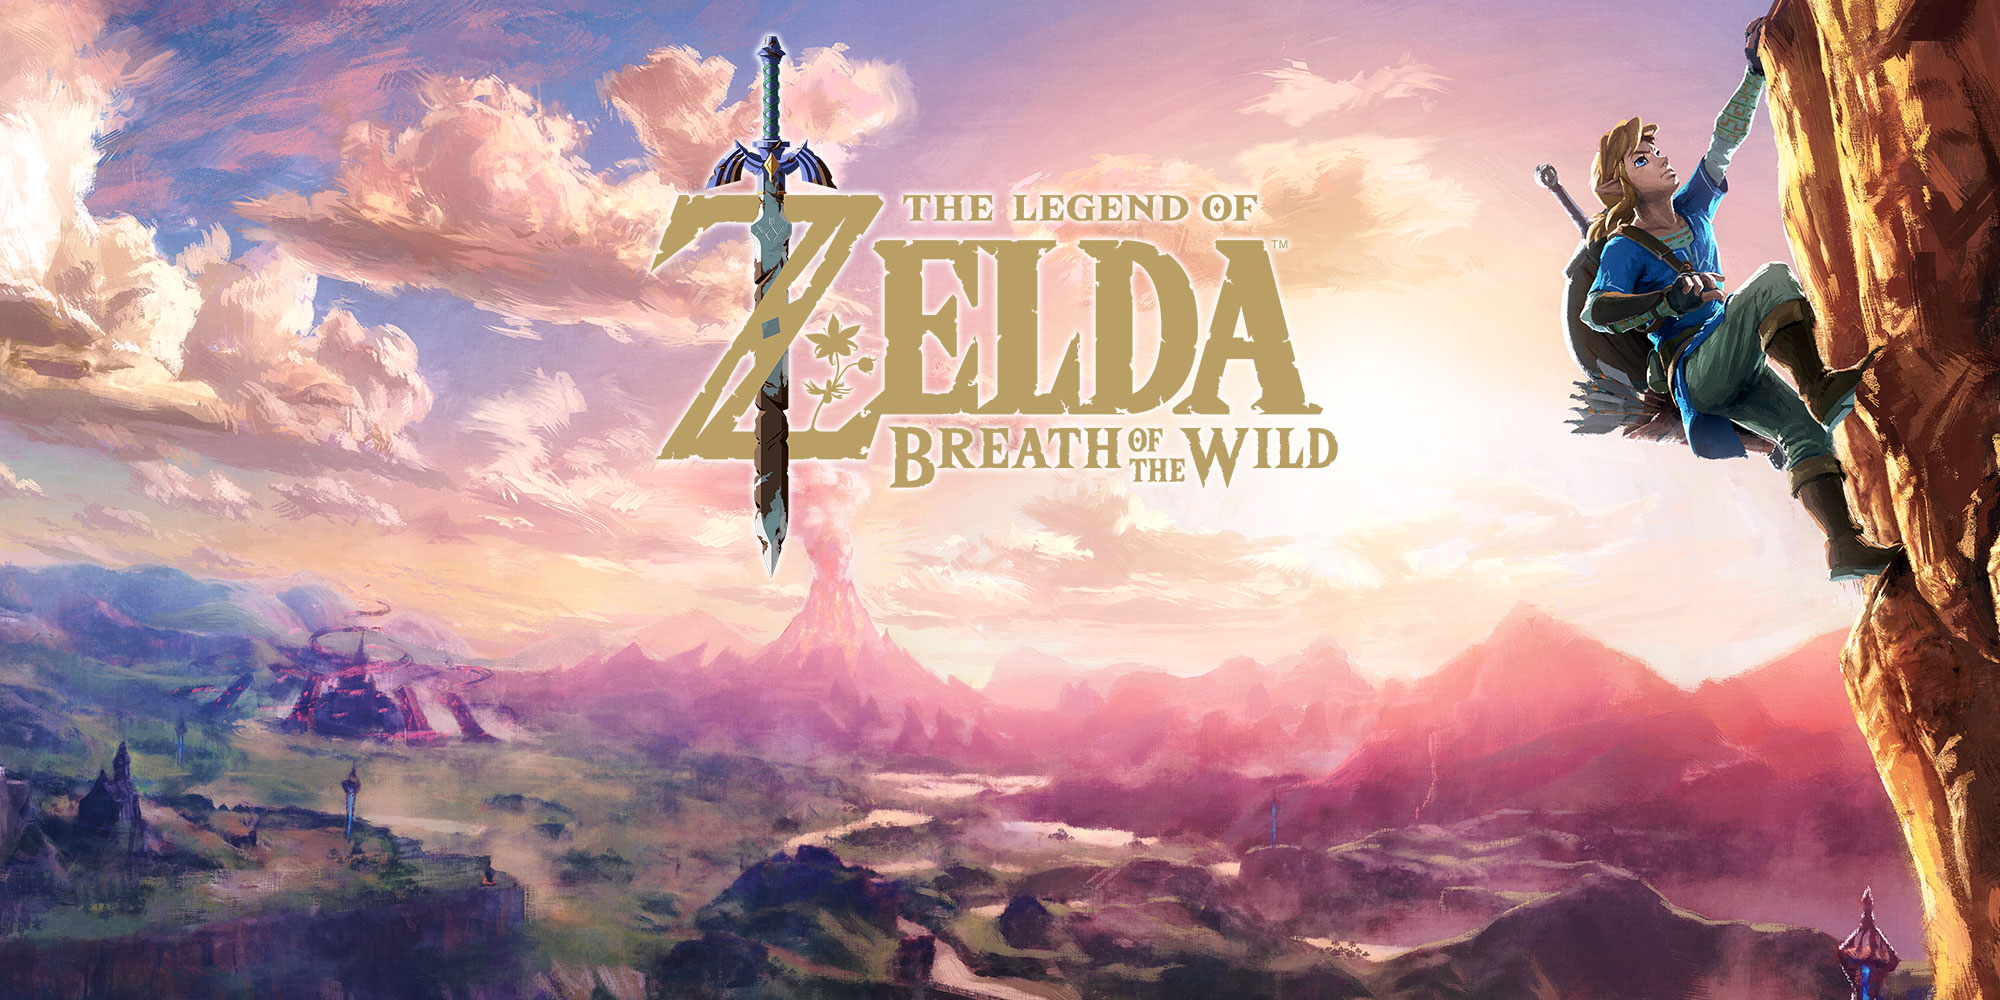 Próximo título de la serie The Legend of Zelda